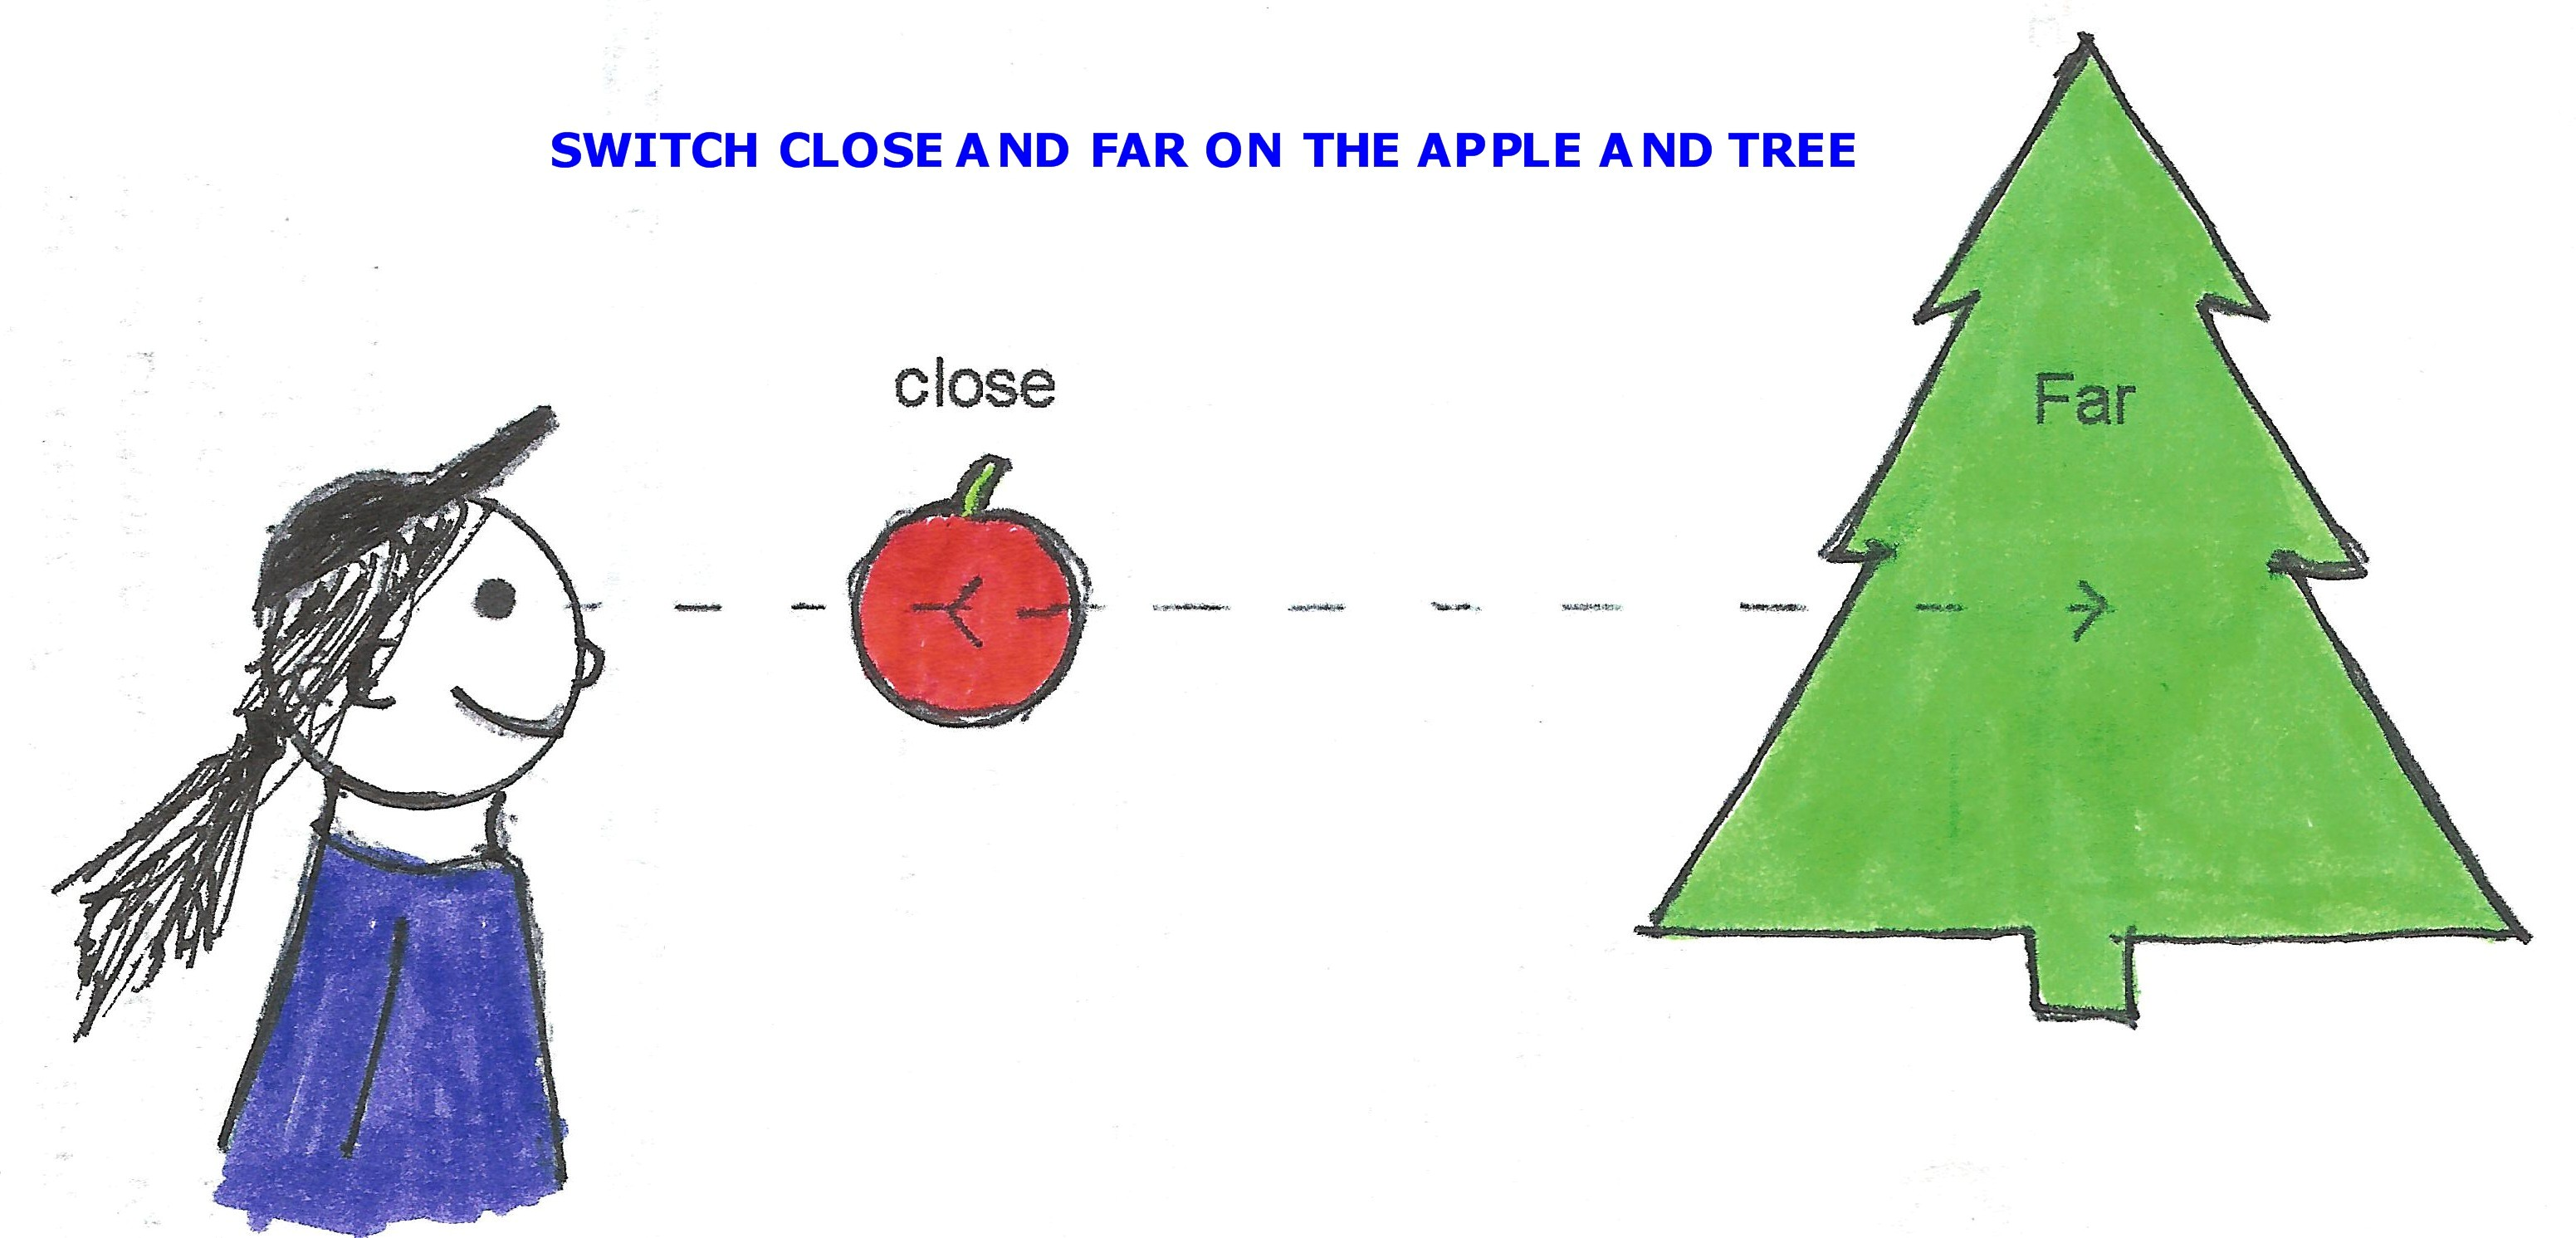 SWITCH CLOSE AND FAR ON THE APPLE AND TREE